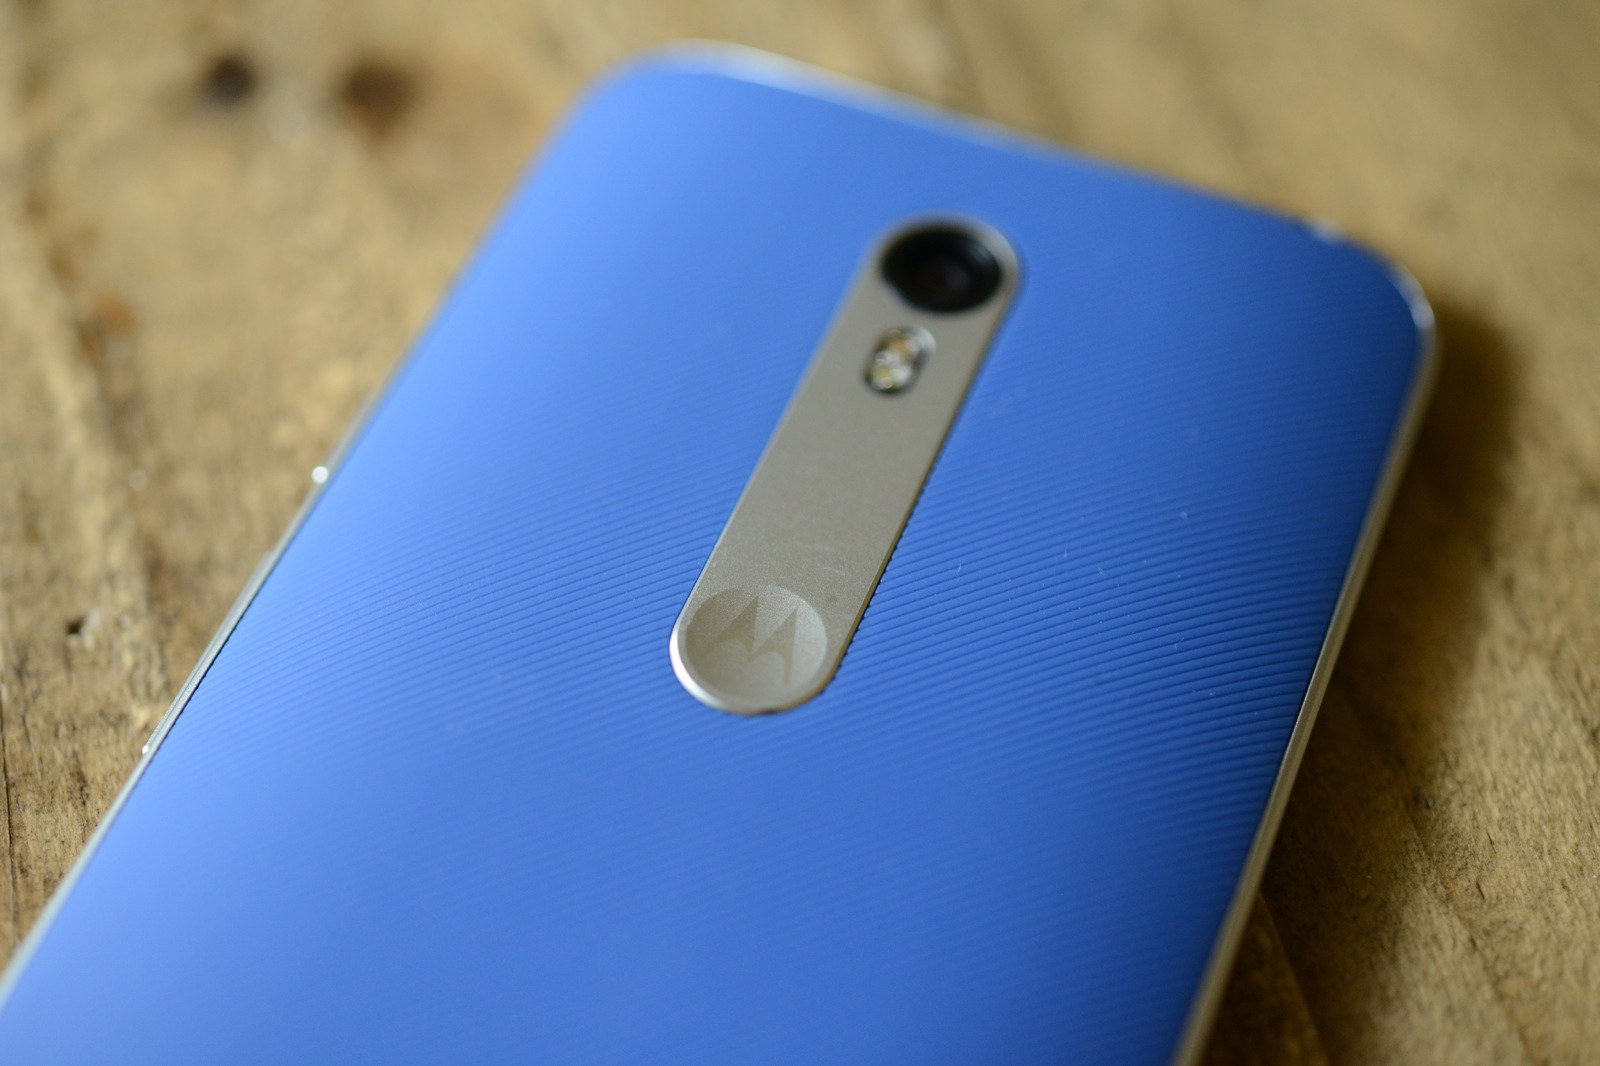 Motorola Moto X Pure Edition Review: Straight-Up Premium Android